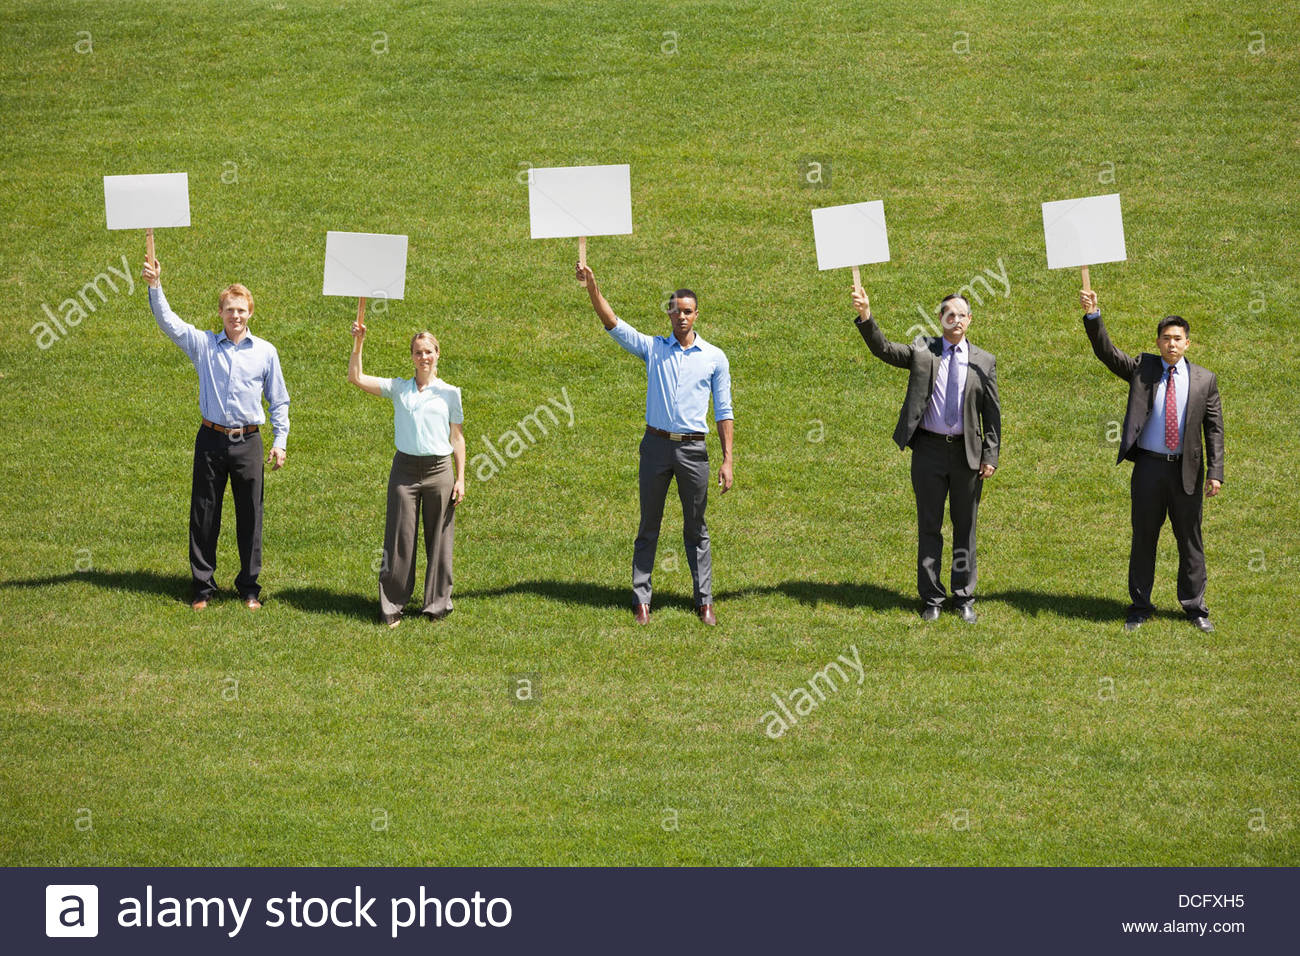 Group of business people holding blank signboards outdoors - Stock Image